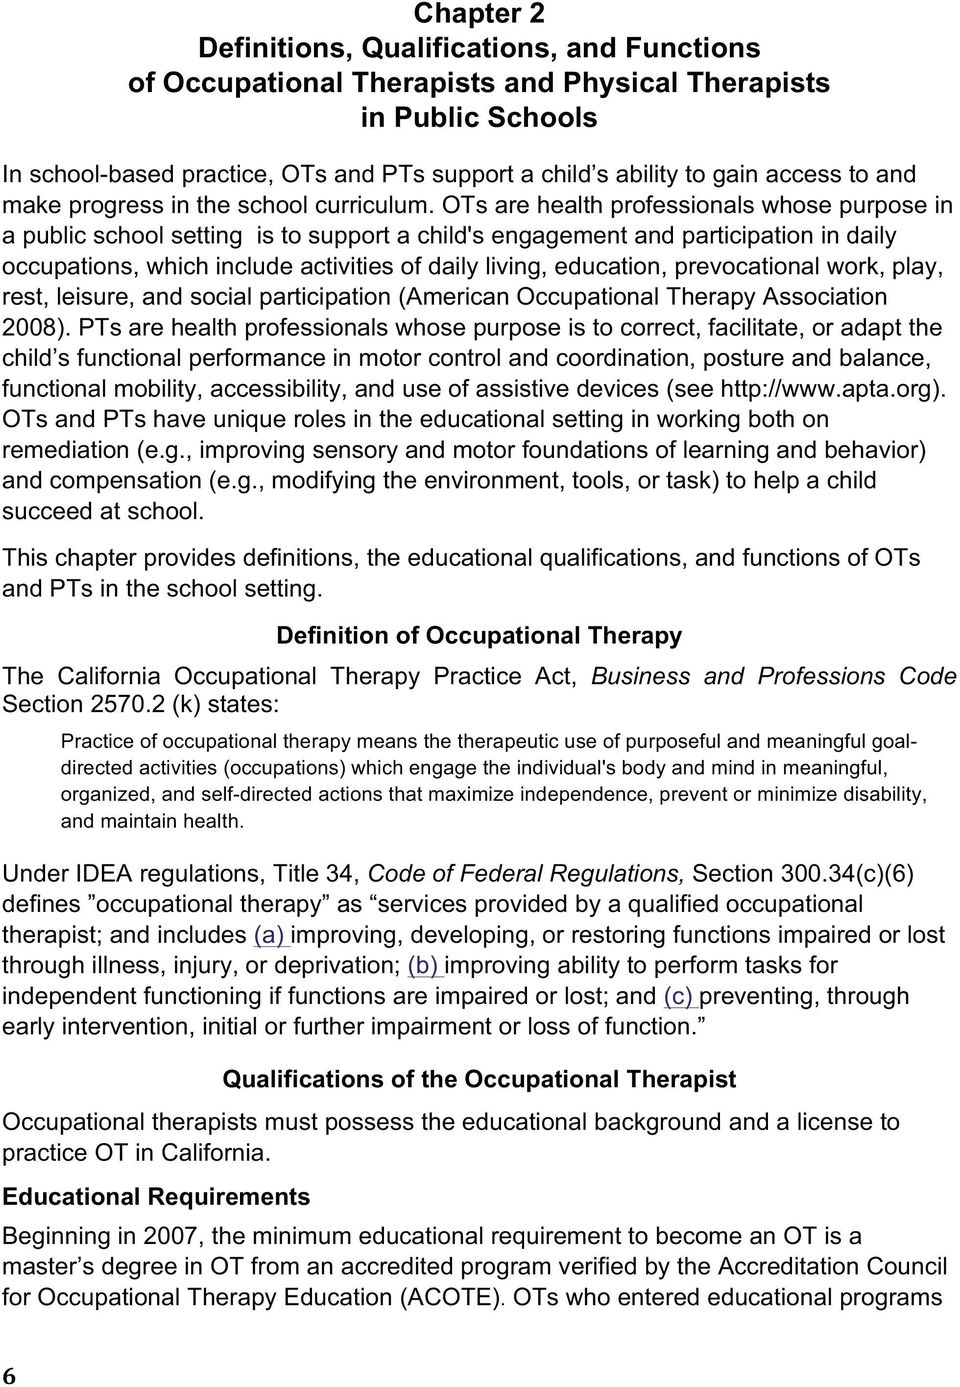 guidelines for occupational therapy and physical therapy in